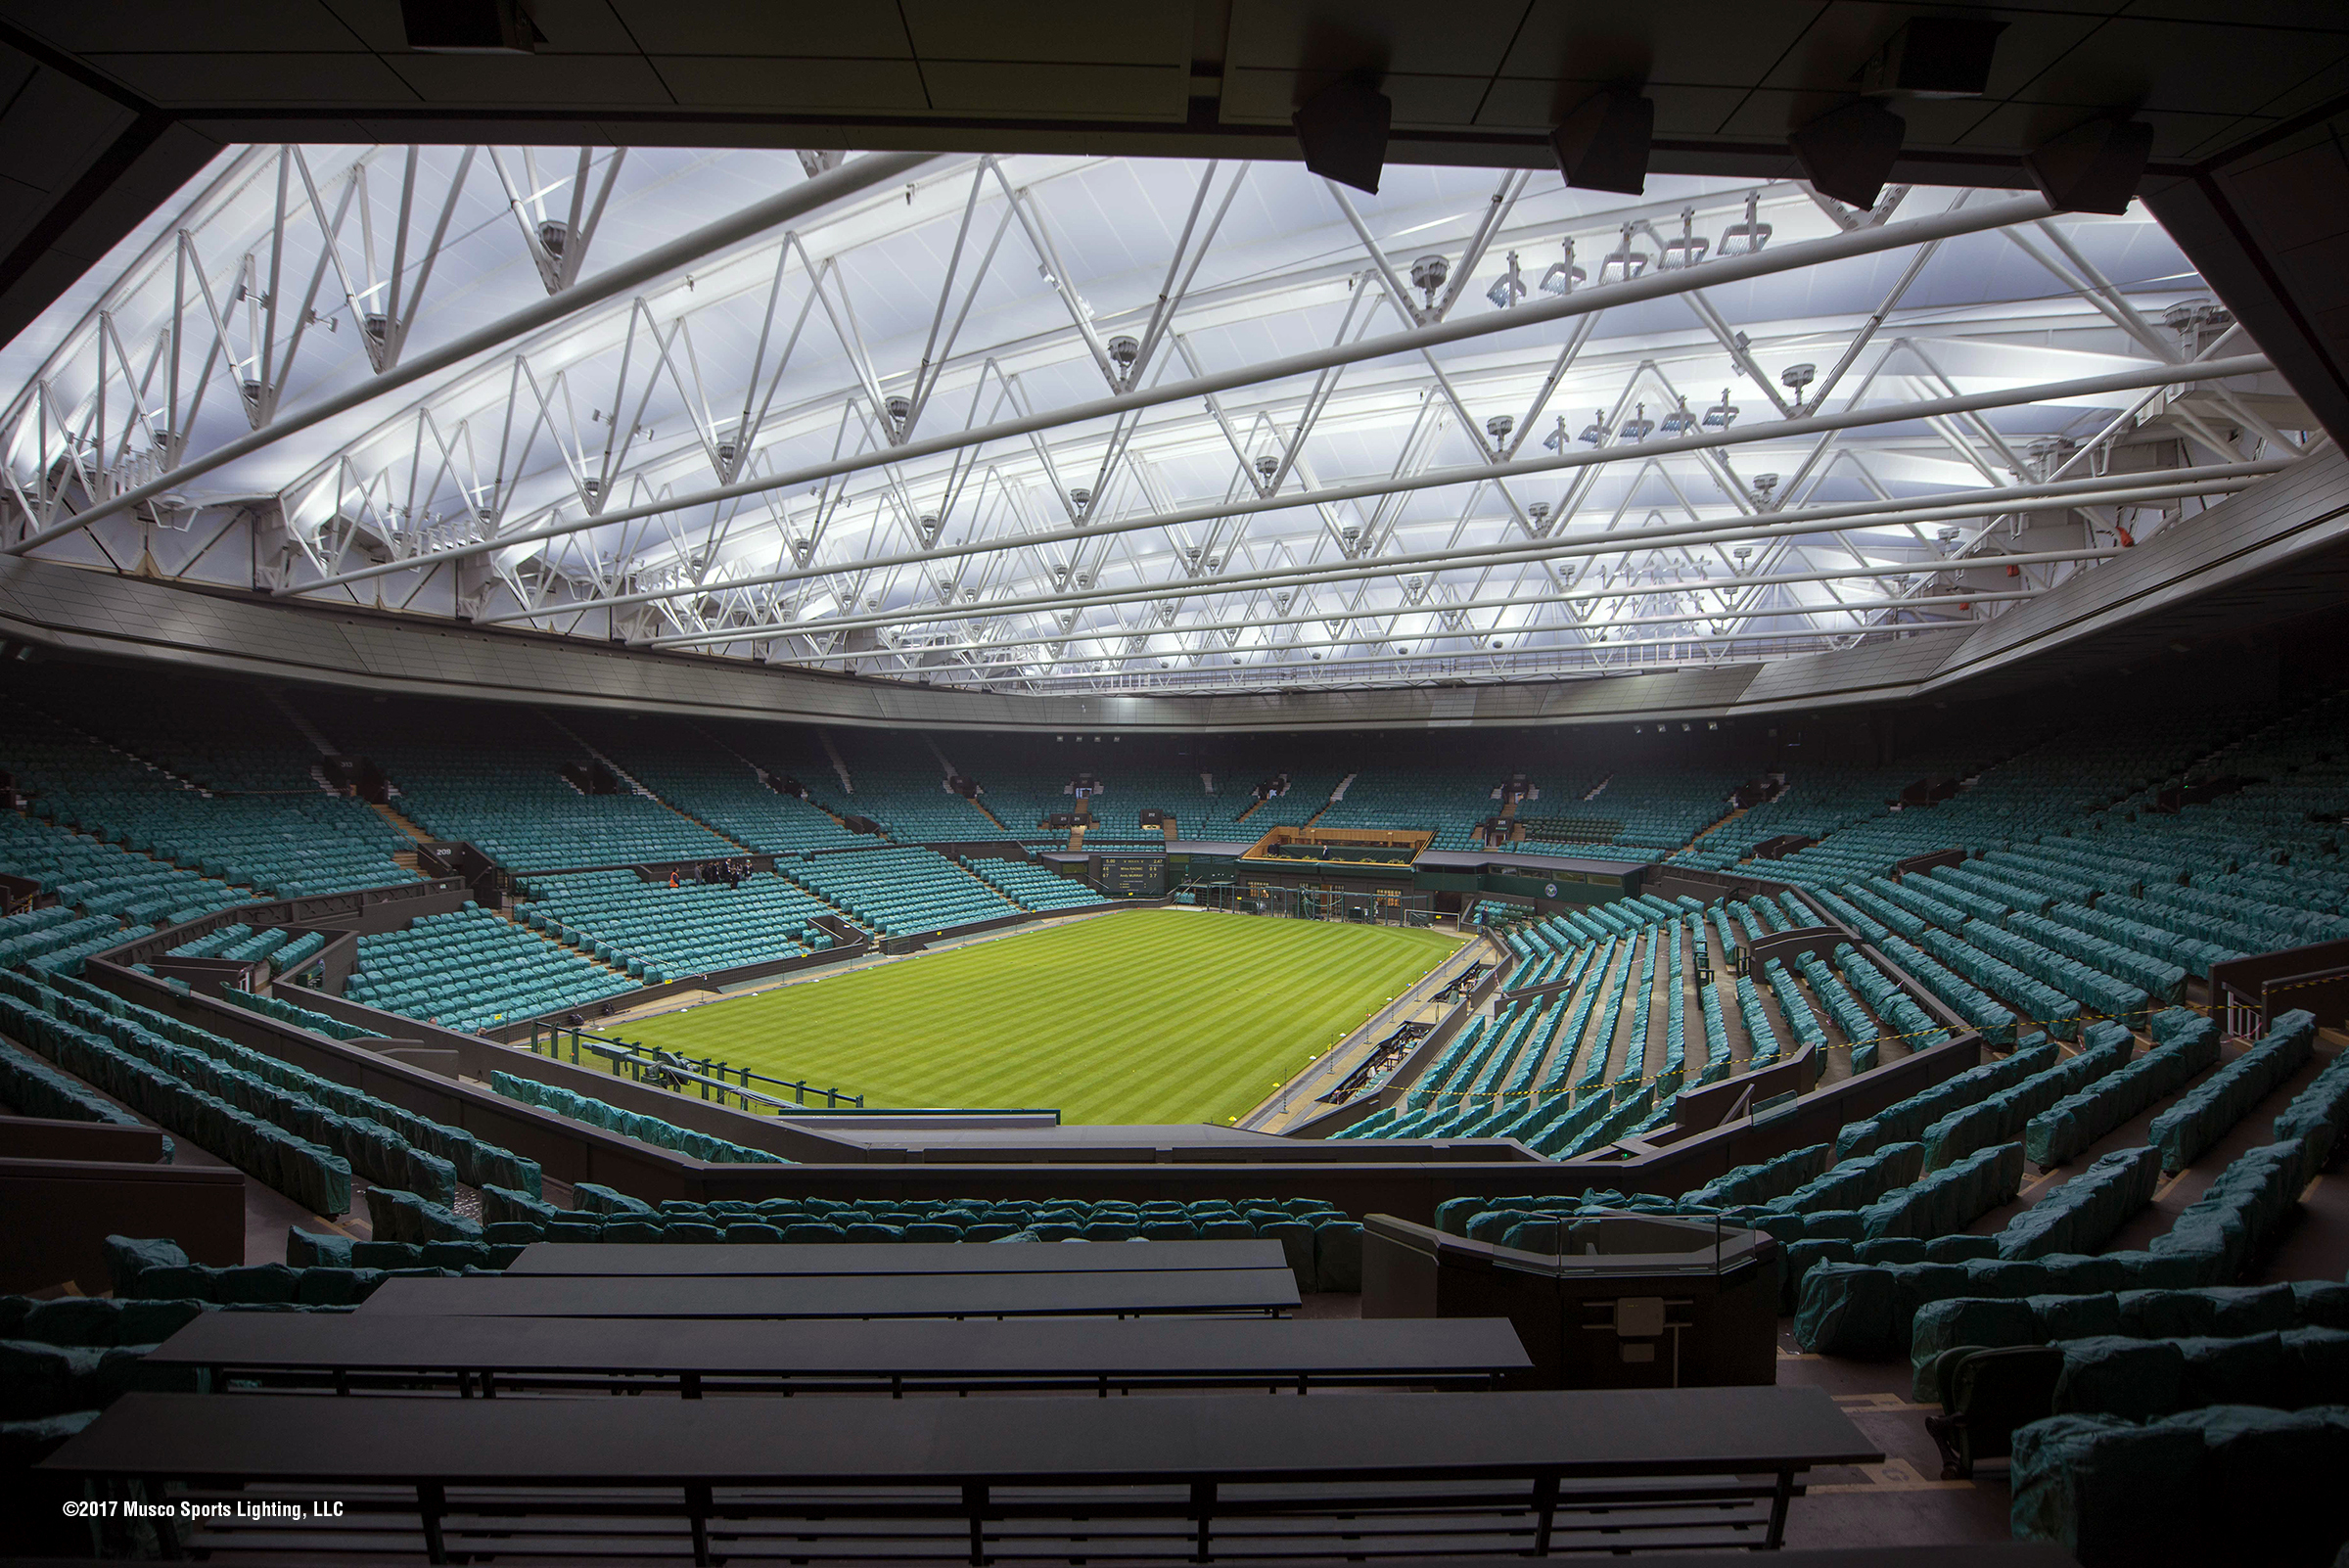 Wonderful led lights wire gallery everything you need to know wimbledon to unveil state of the art led lighting system at centre asfbconference2016 Images